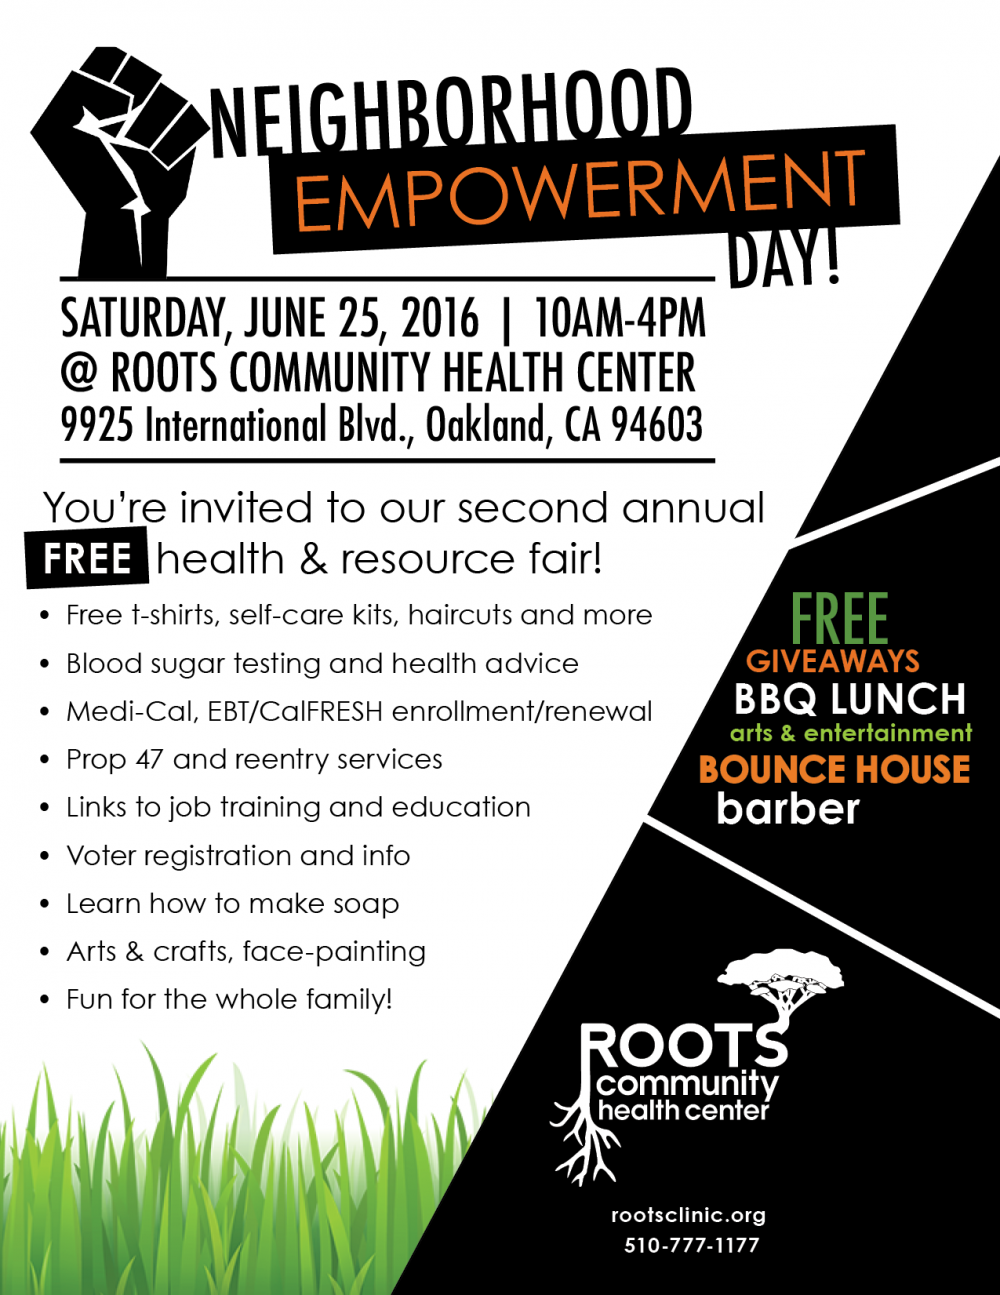 East Oakland 2016 Neighborhood Empowerment Day